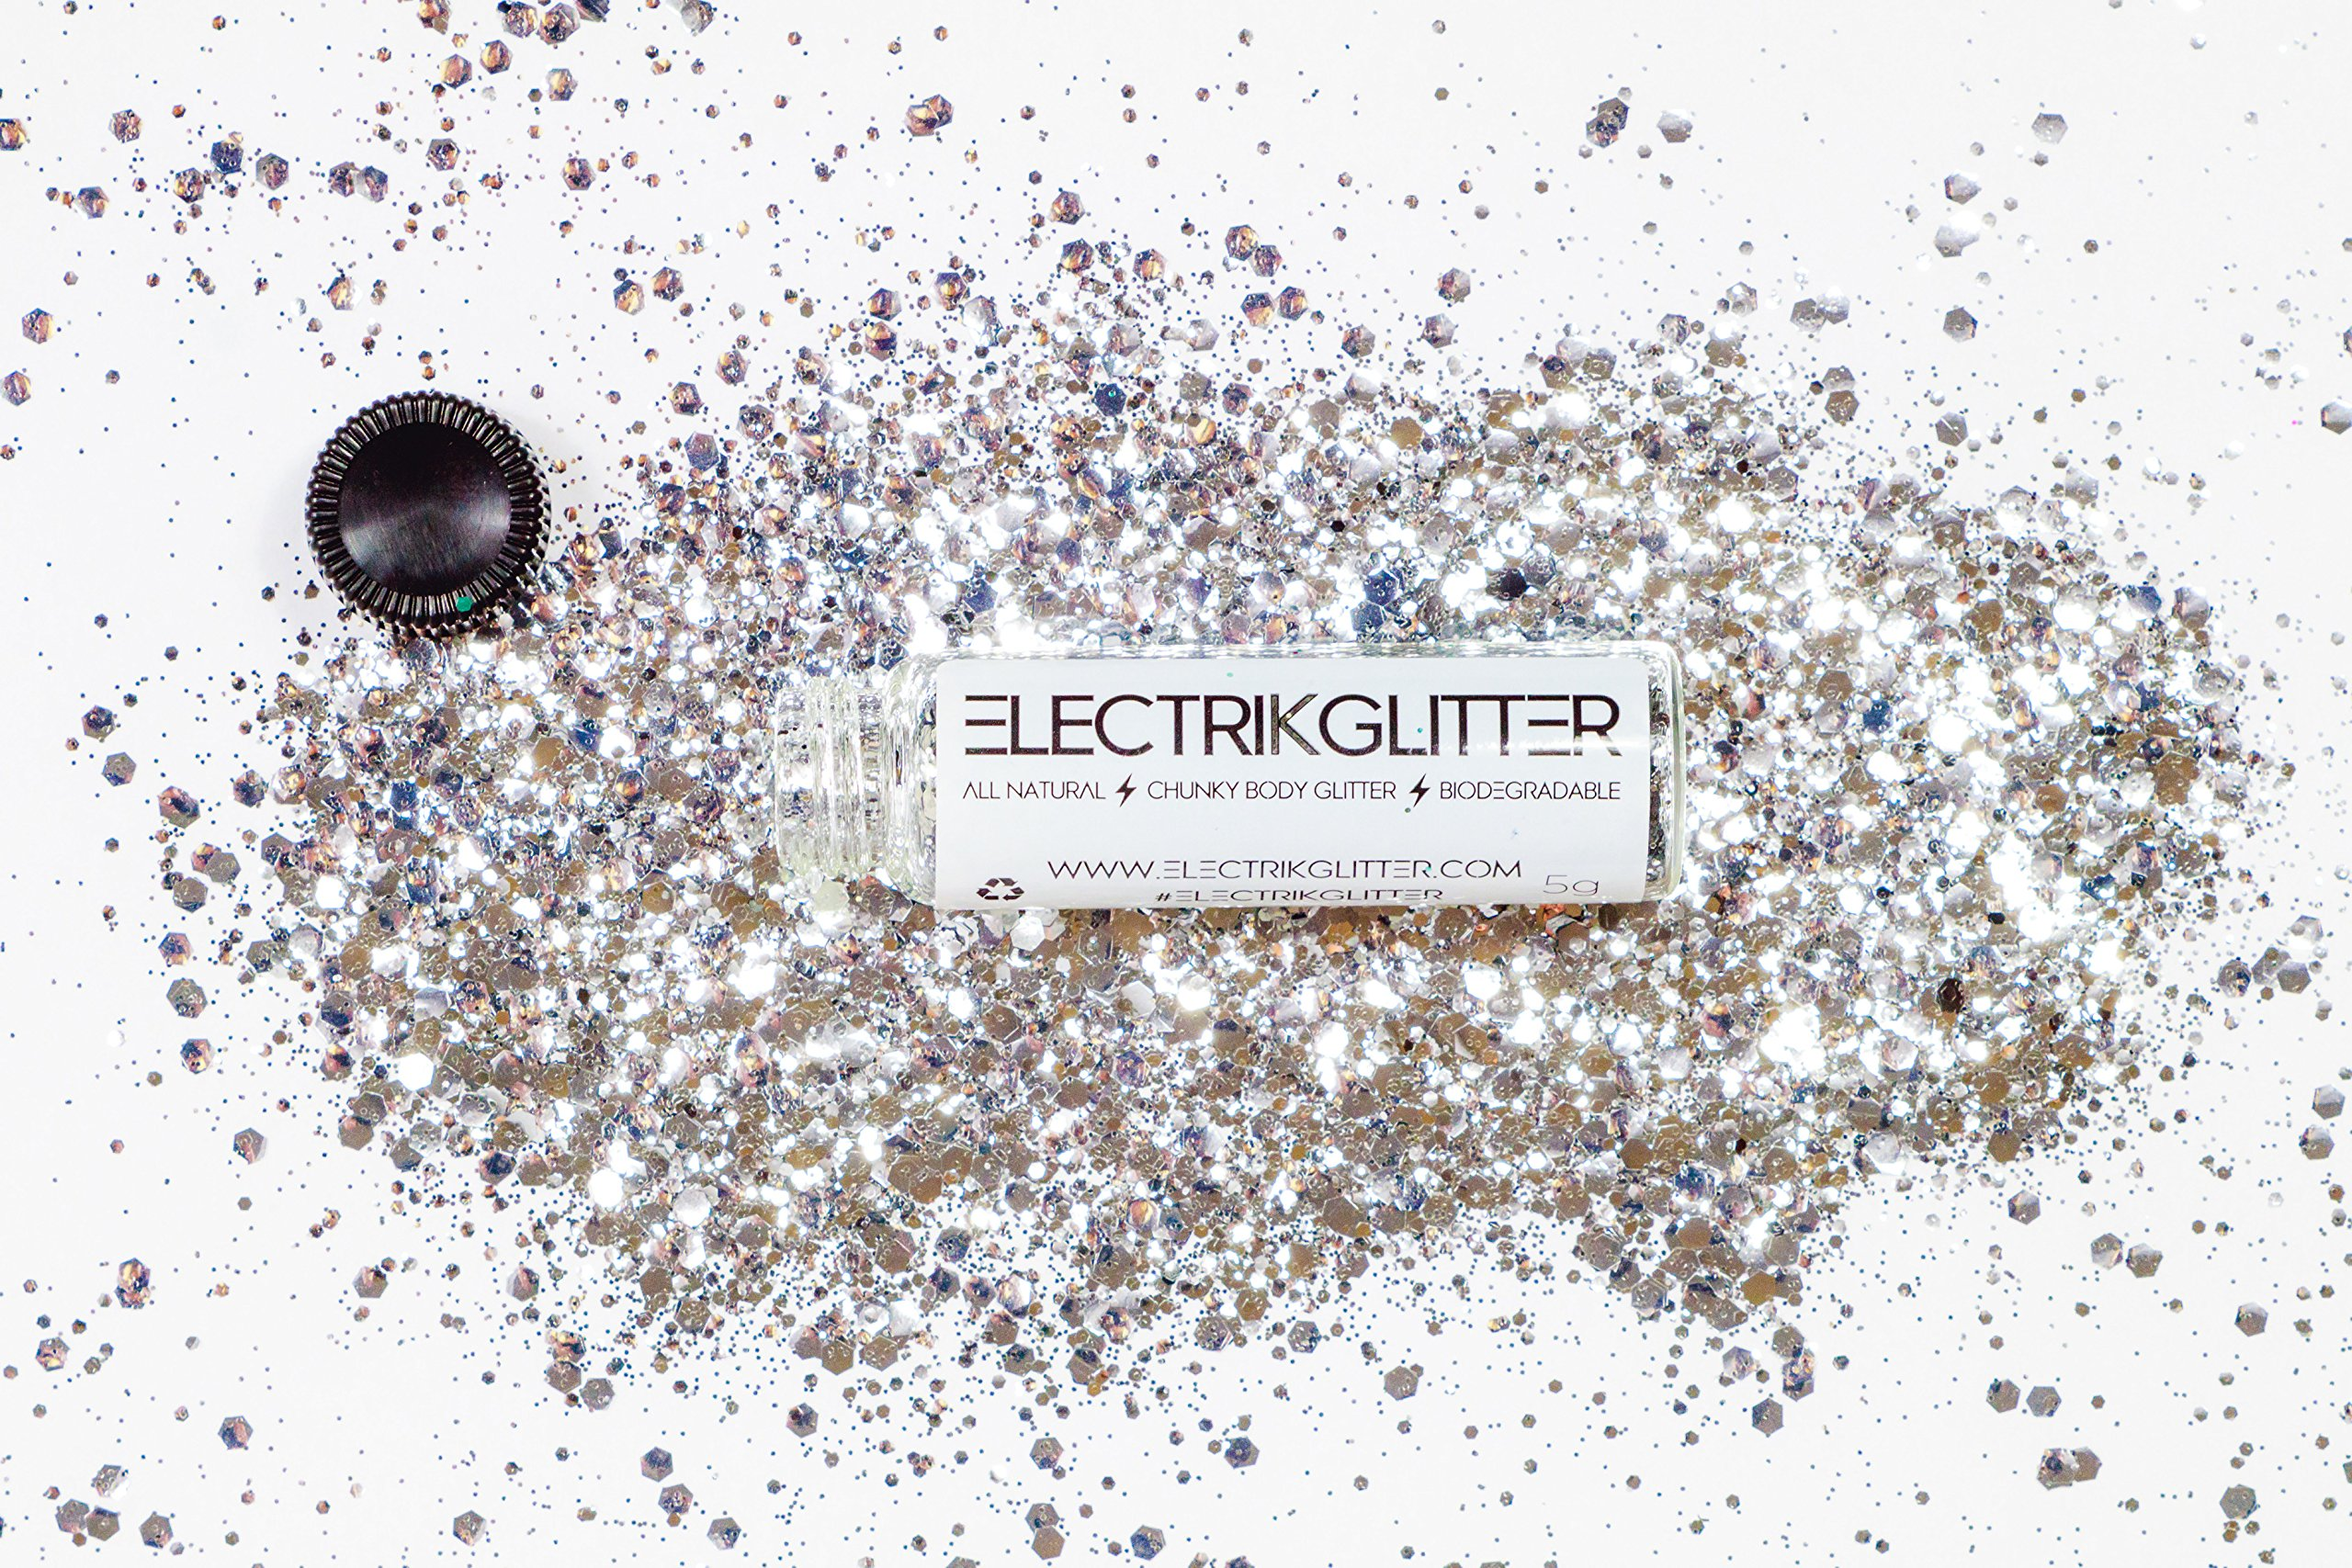 Electrik Glitter Biodegradable Body Glitter (5G) (Silver Sand Dollar) by Electrik Glitter (Image #3)